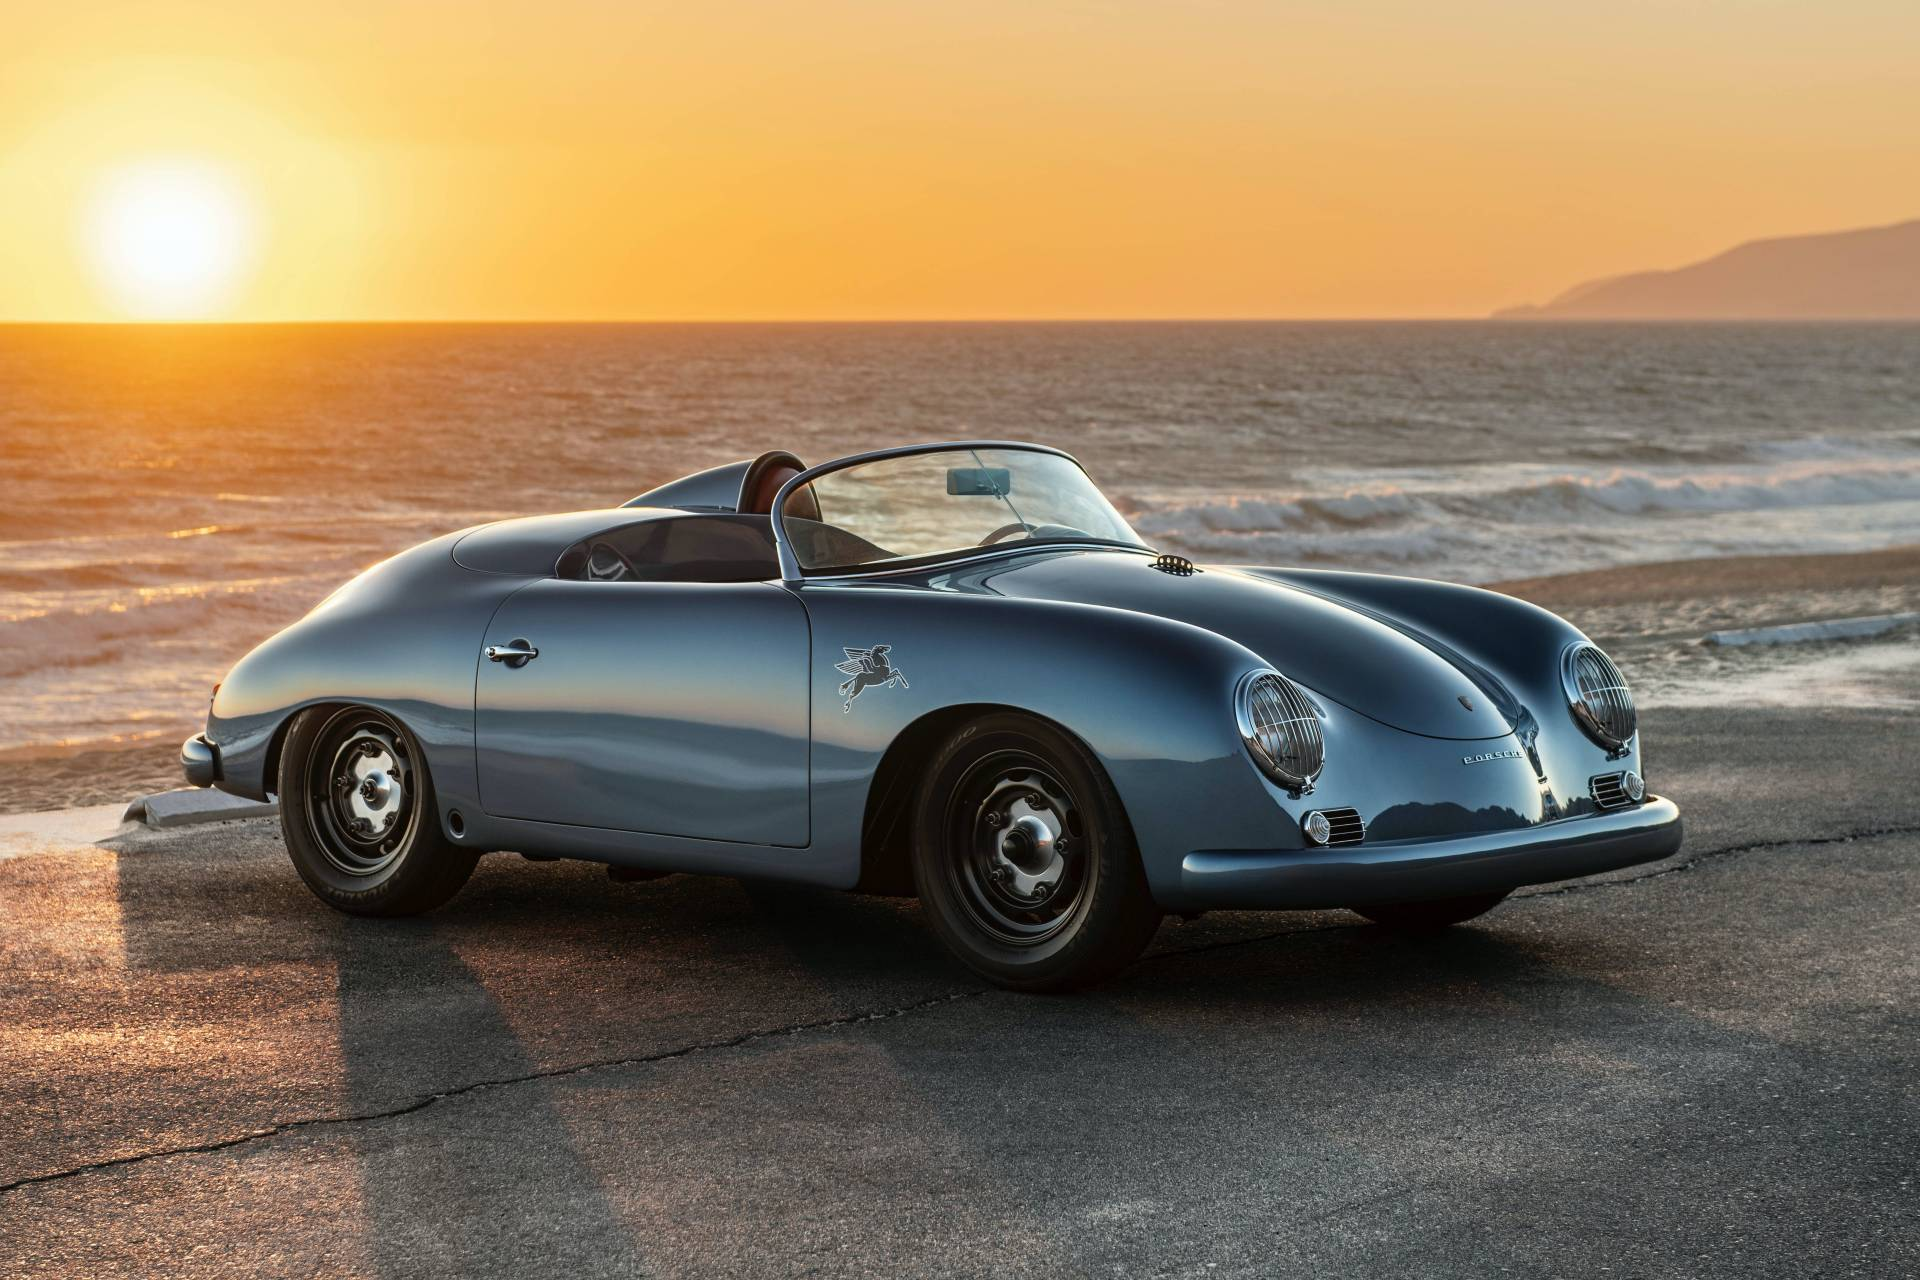 Porsche-356-Speedster-1959-Aquamarine-Transitional-By-Emory-Motorsport-4